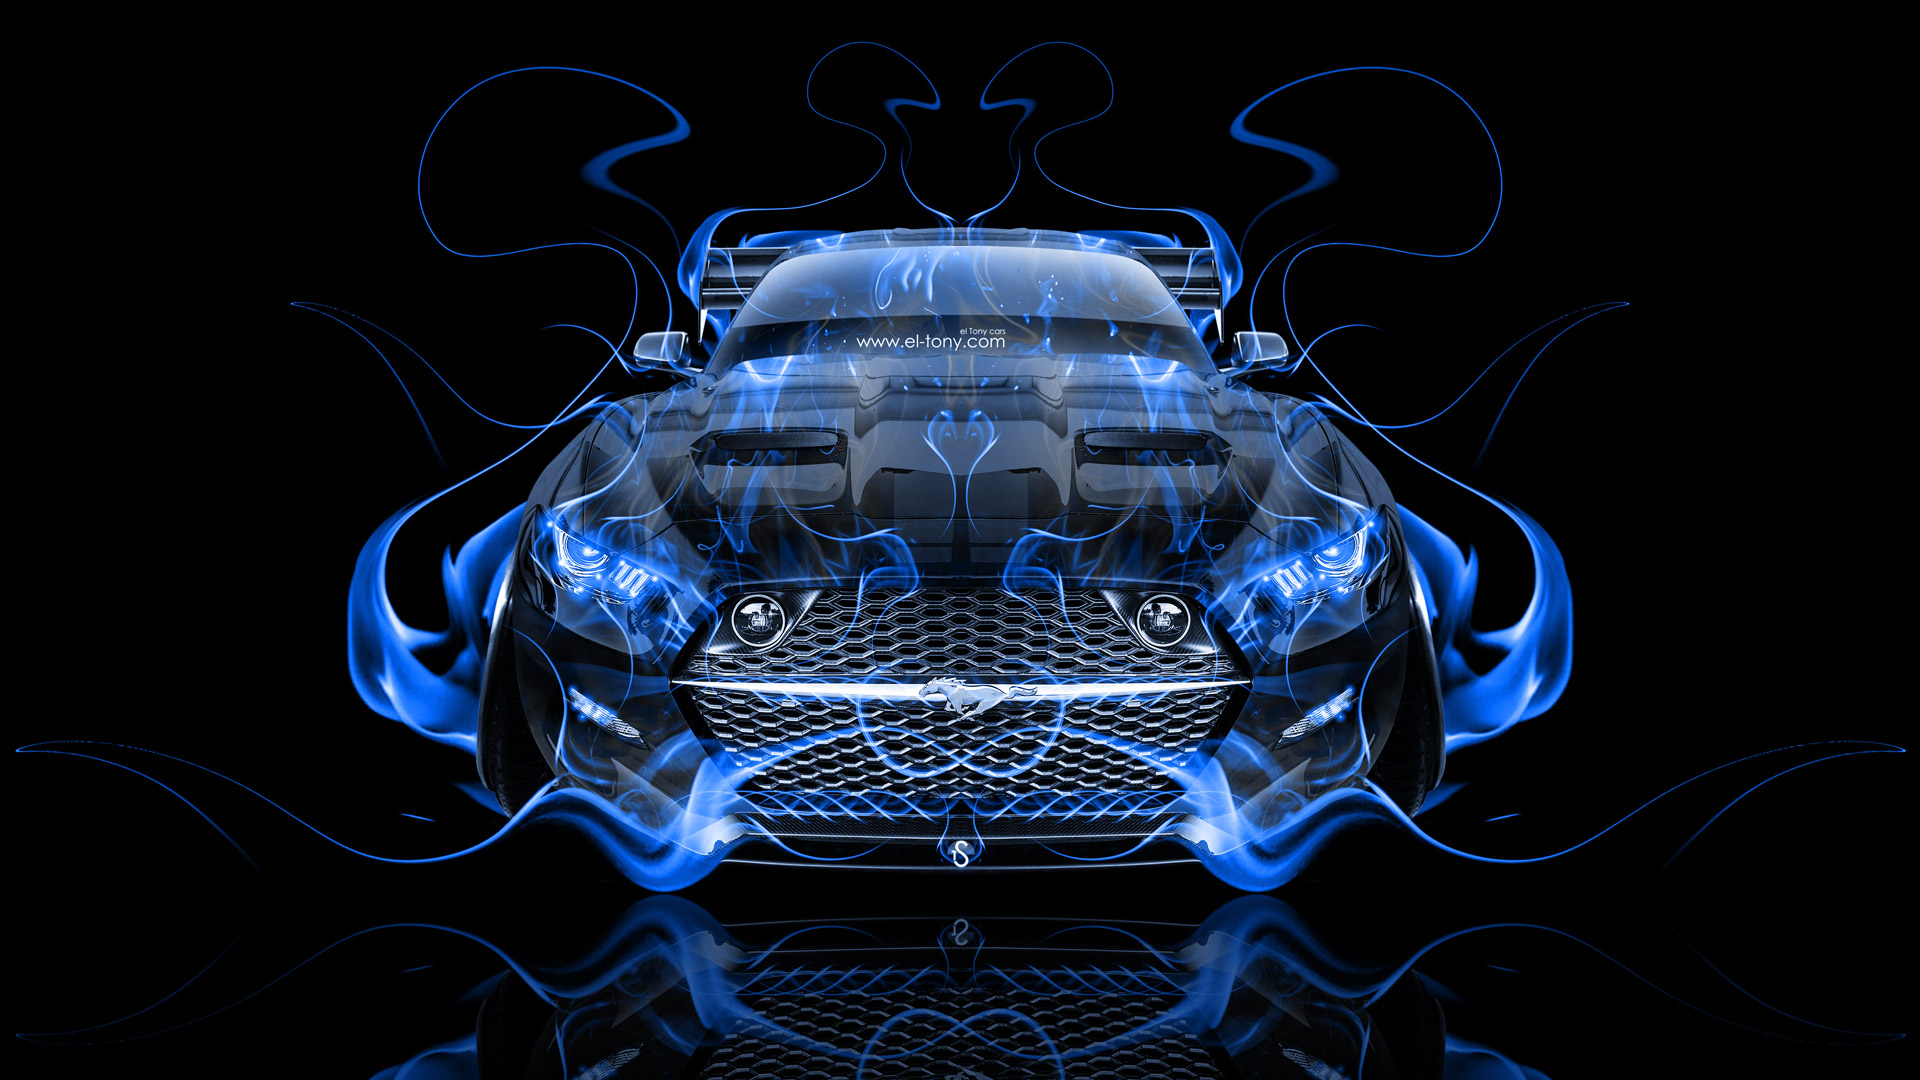 Ford Mustang Muscle Tuning Fire Abstract Car 2015   el Tony